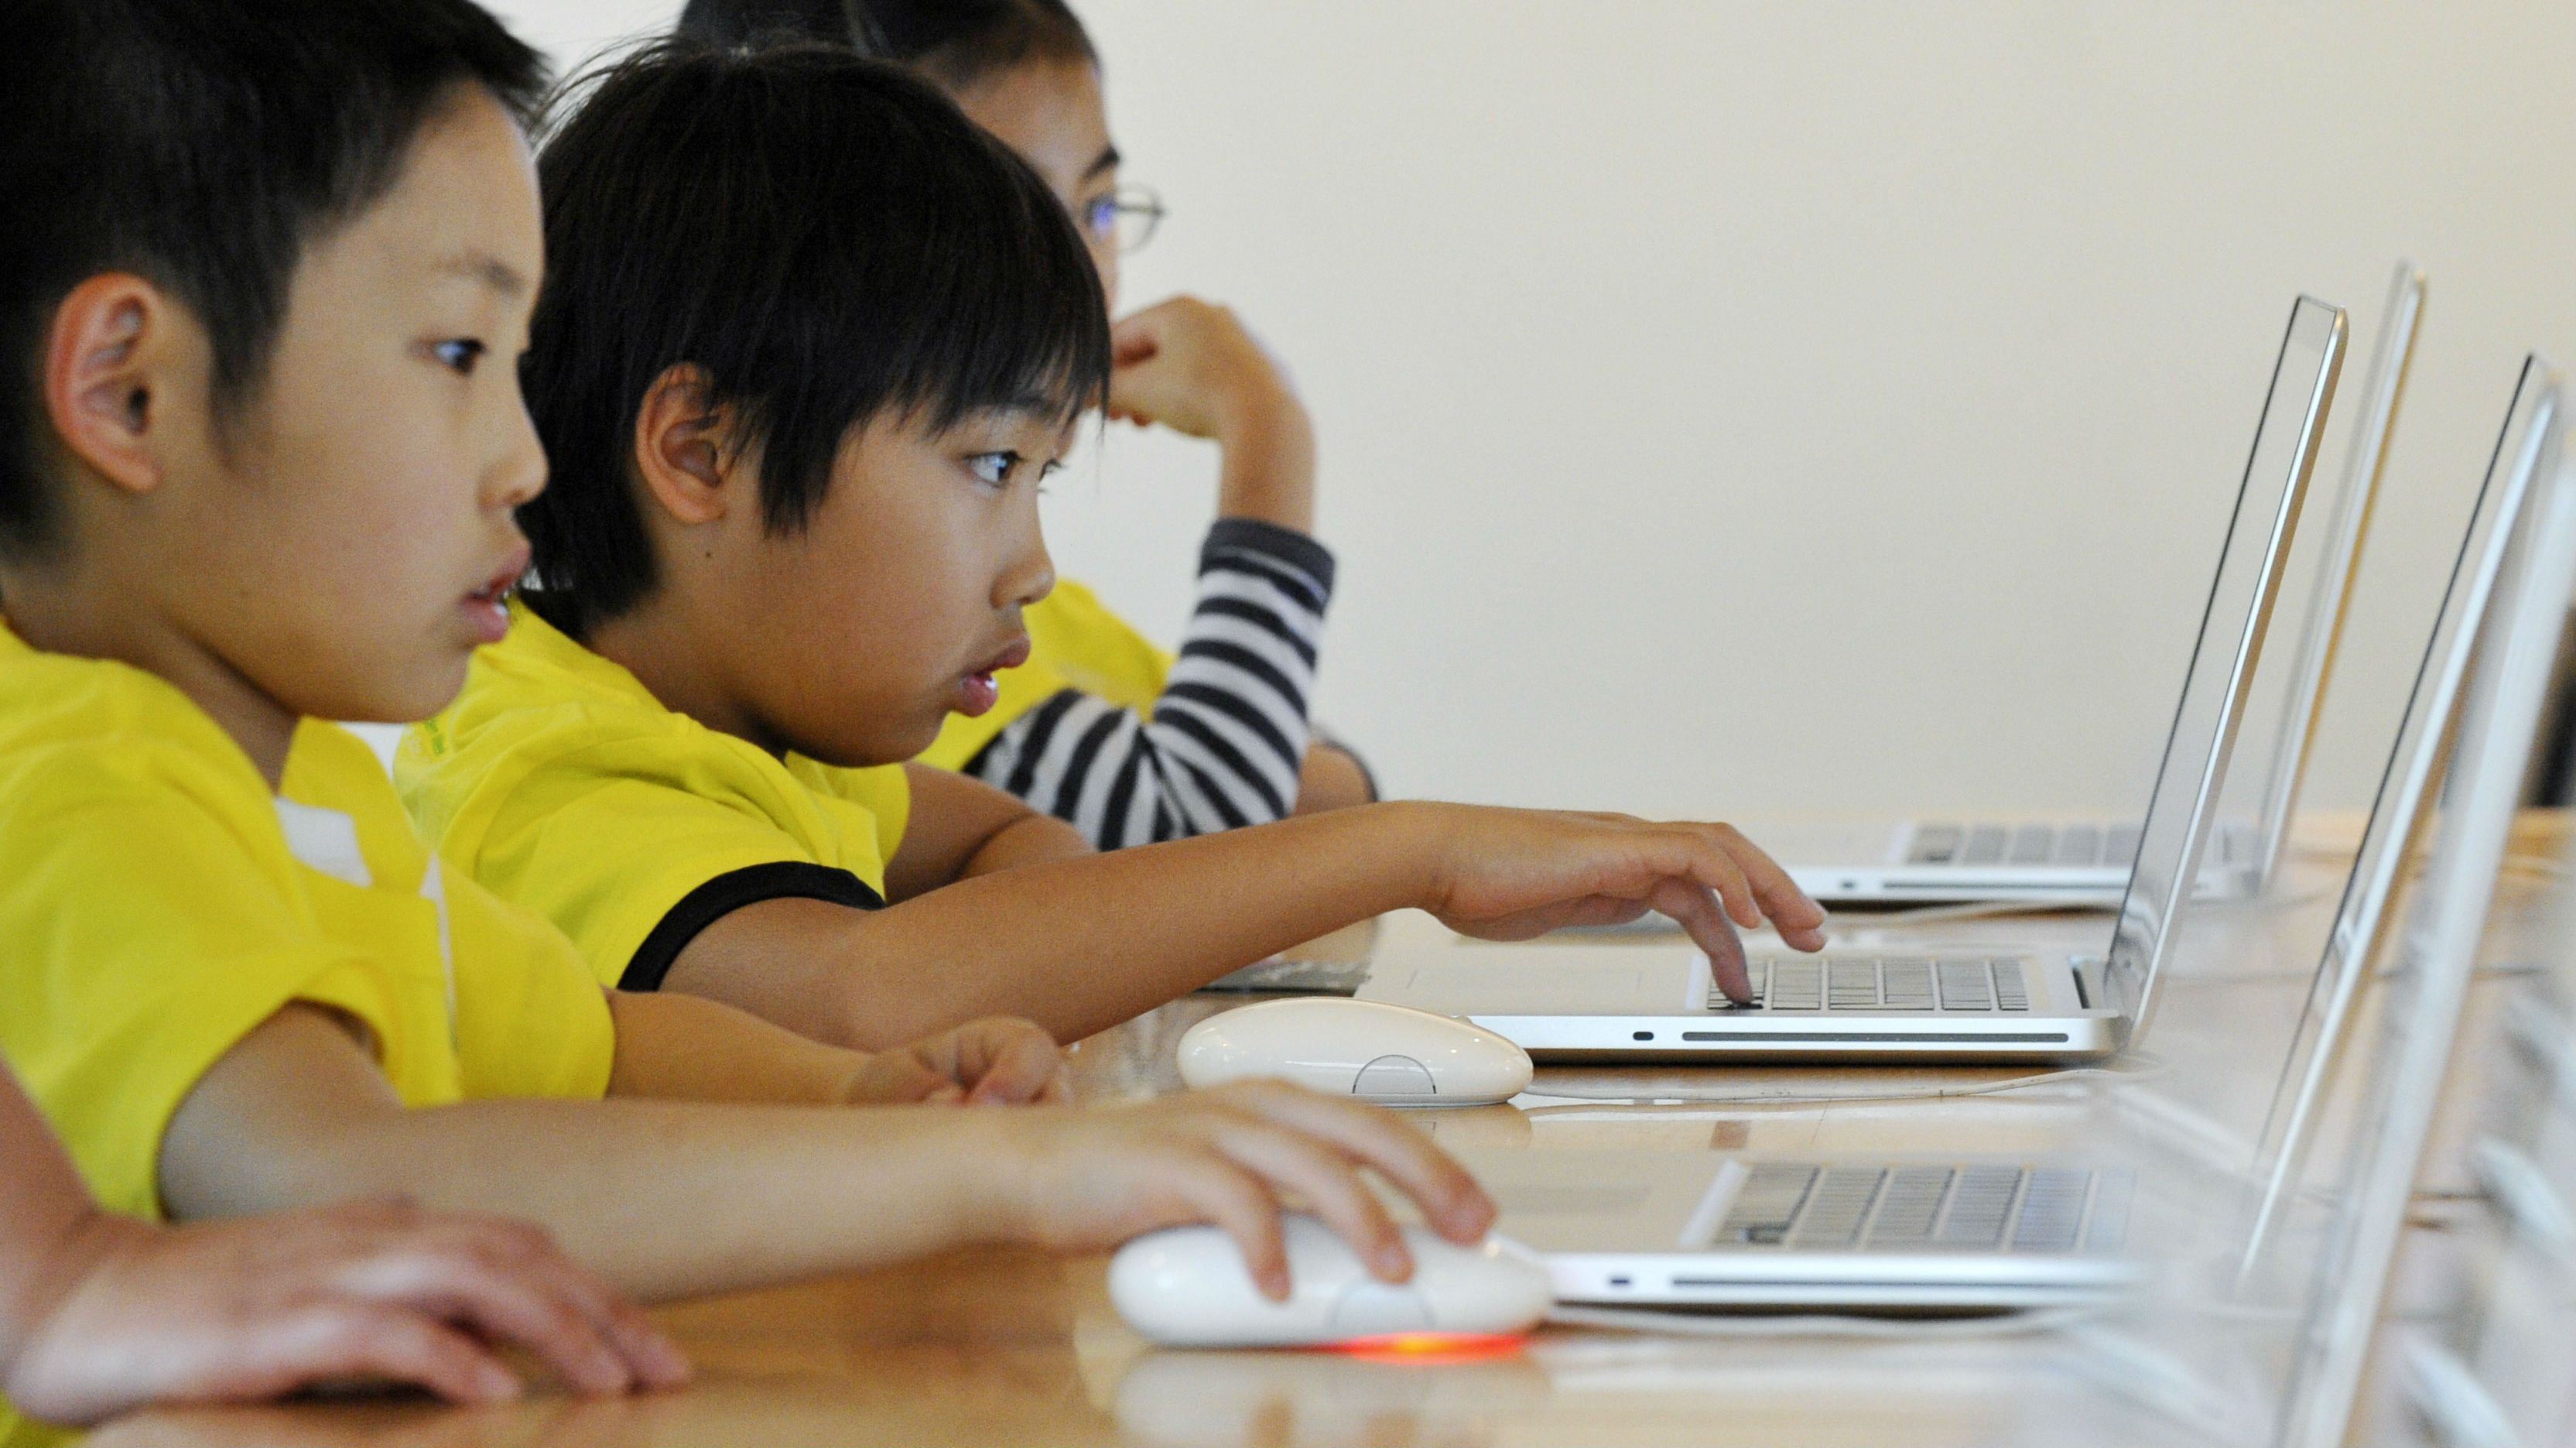 Shotaro Kitamura, 9, right, touches a keyboard as he attends a Kids' day event to learn how to use computers with other elementary school children at Apple Store in Tokyo's Ginza shopping district Tuesday, May 5, 2009, Children's day national holiday. (AP Photo/Katsumi Kasahara)